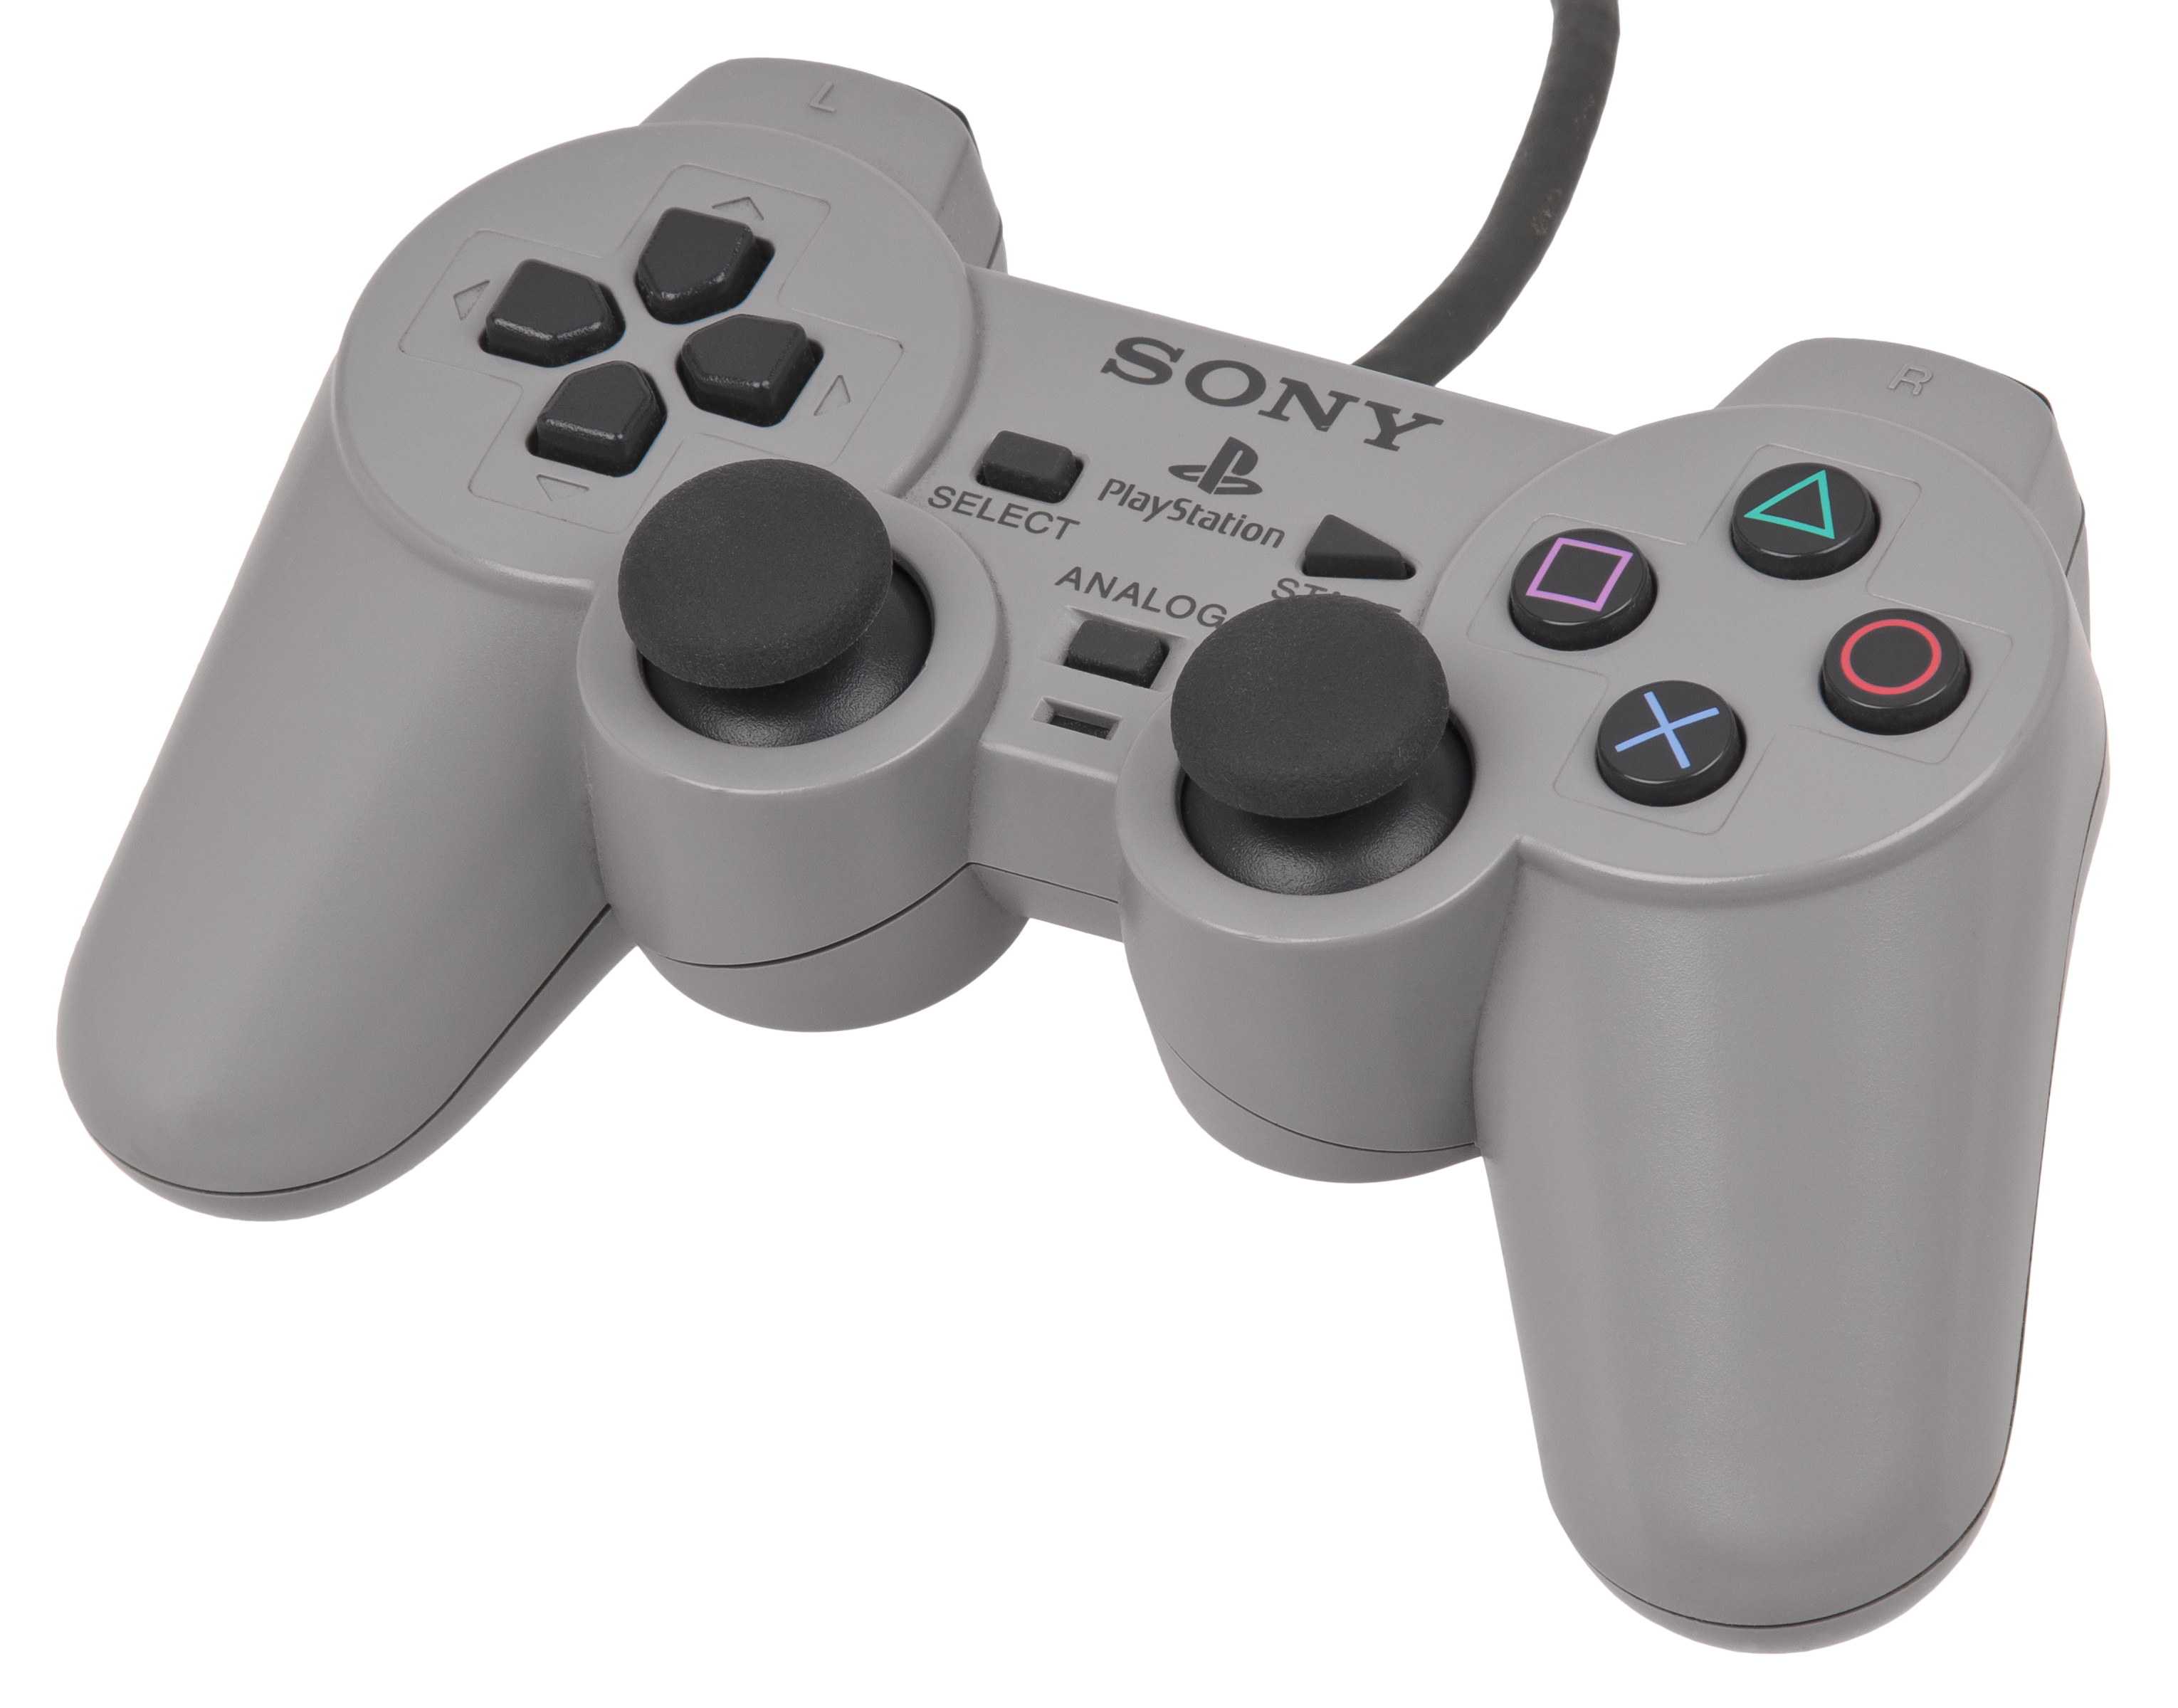 uploads gamepad gamepad PNG81 4